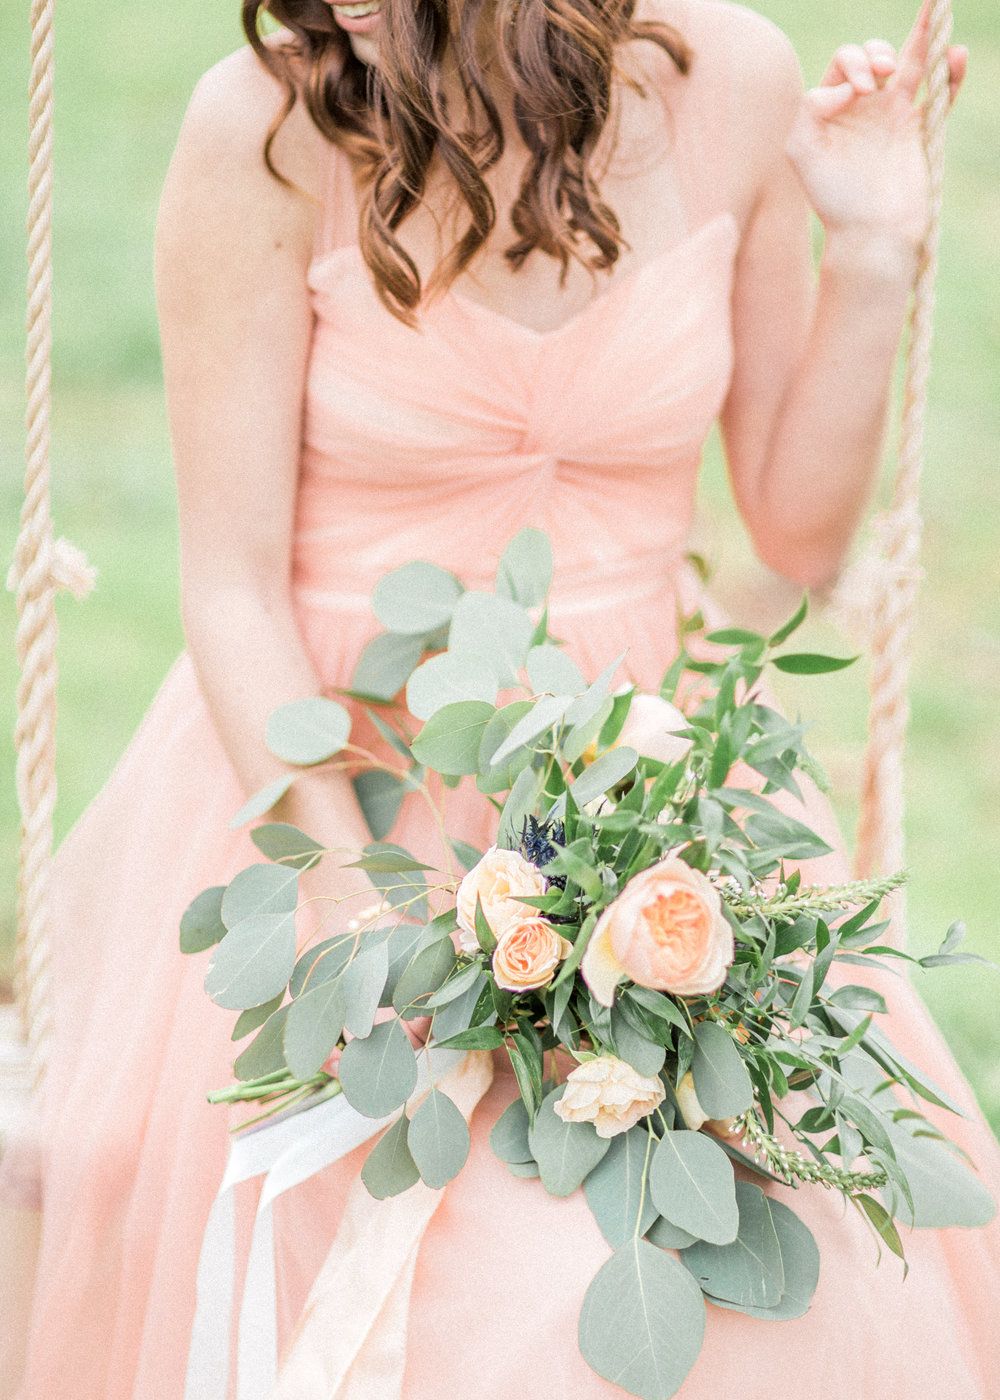 peach-wedding-bouquet-third-clover-paper-ginger-and-blooms-mikaela-marie-photography.jpg